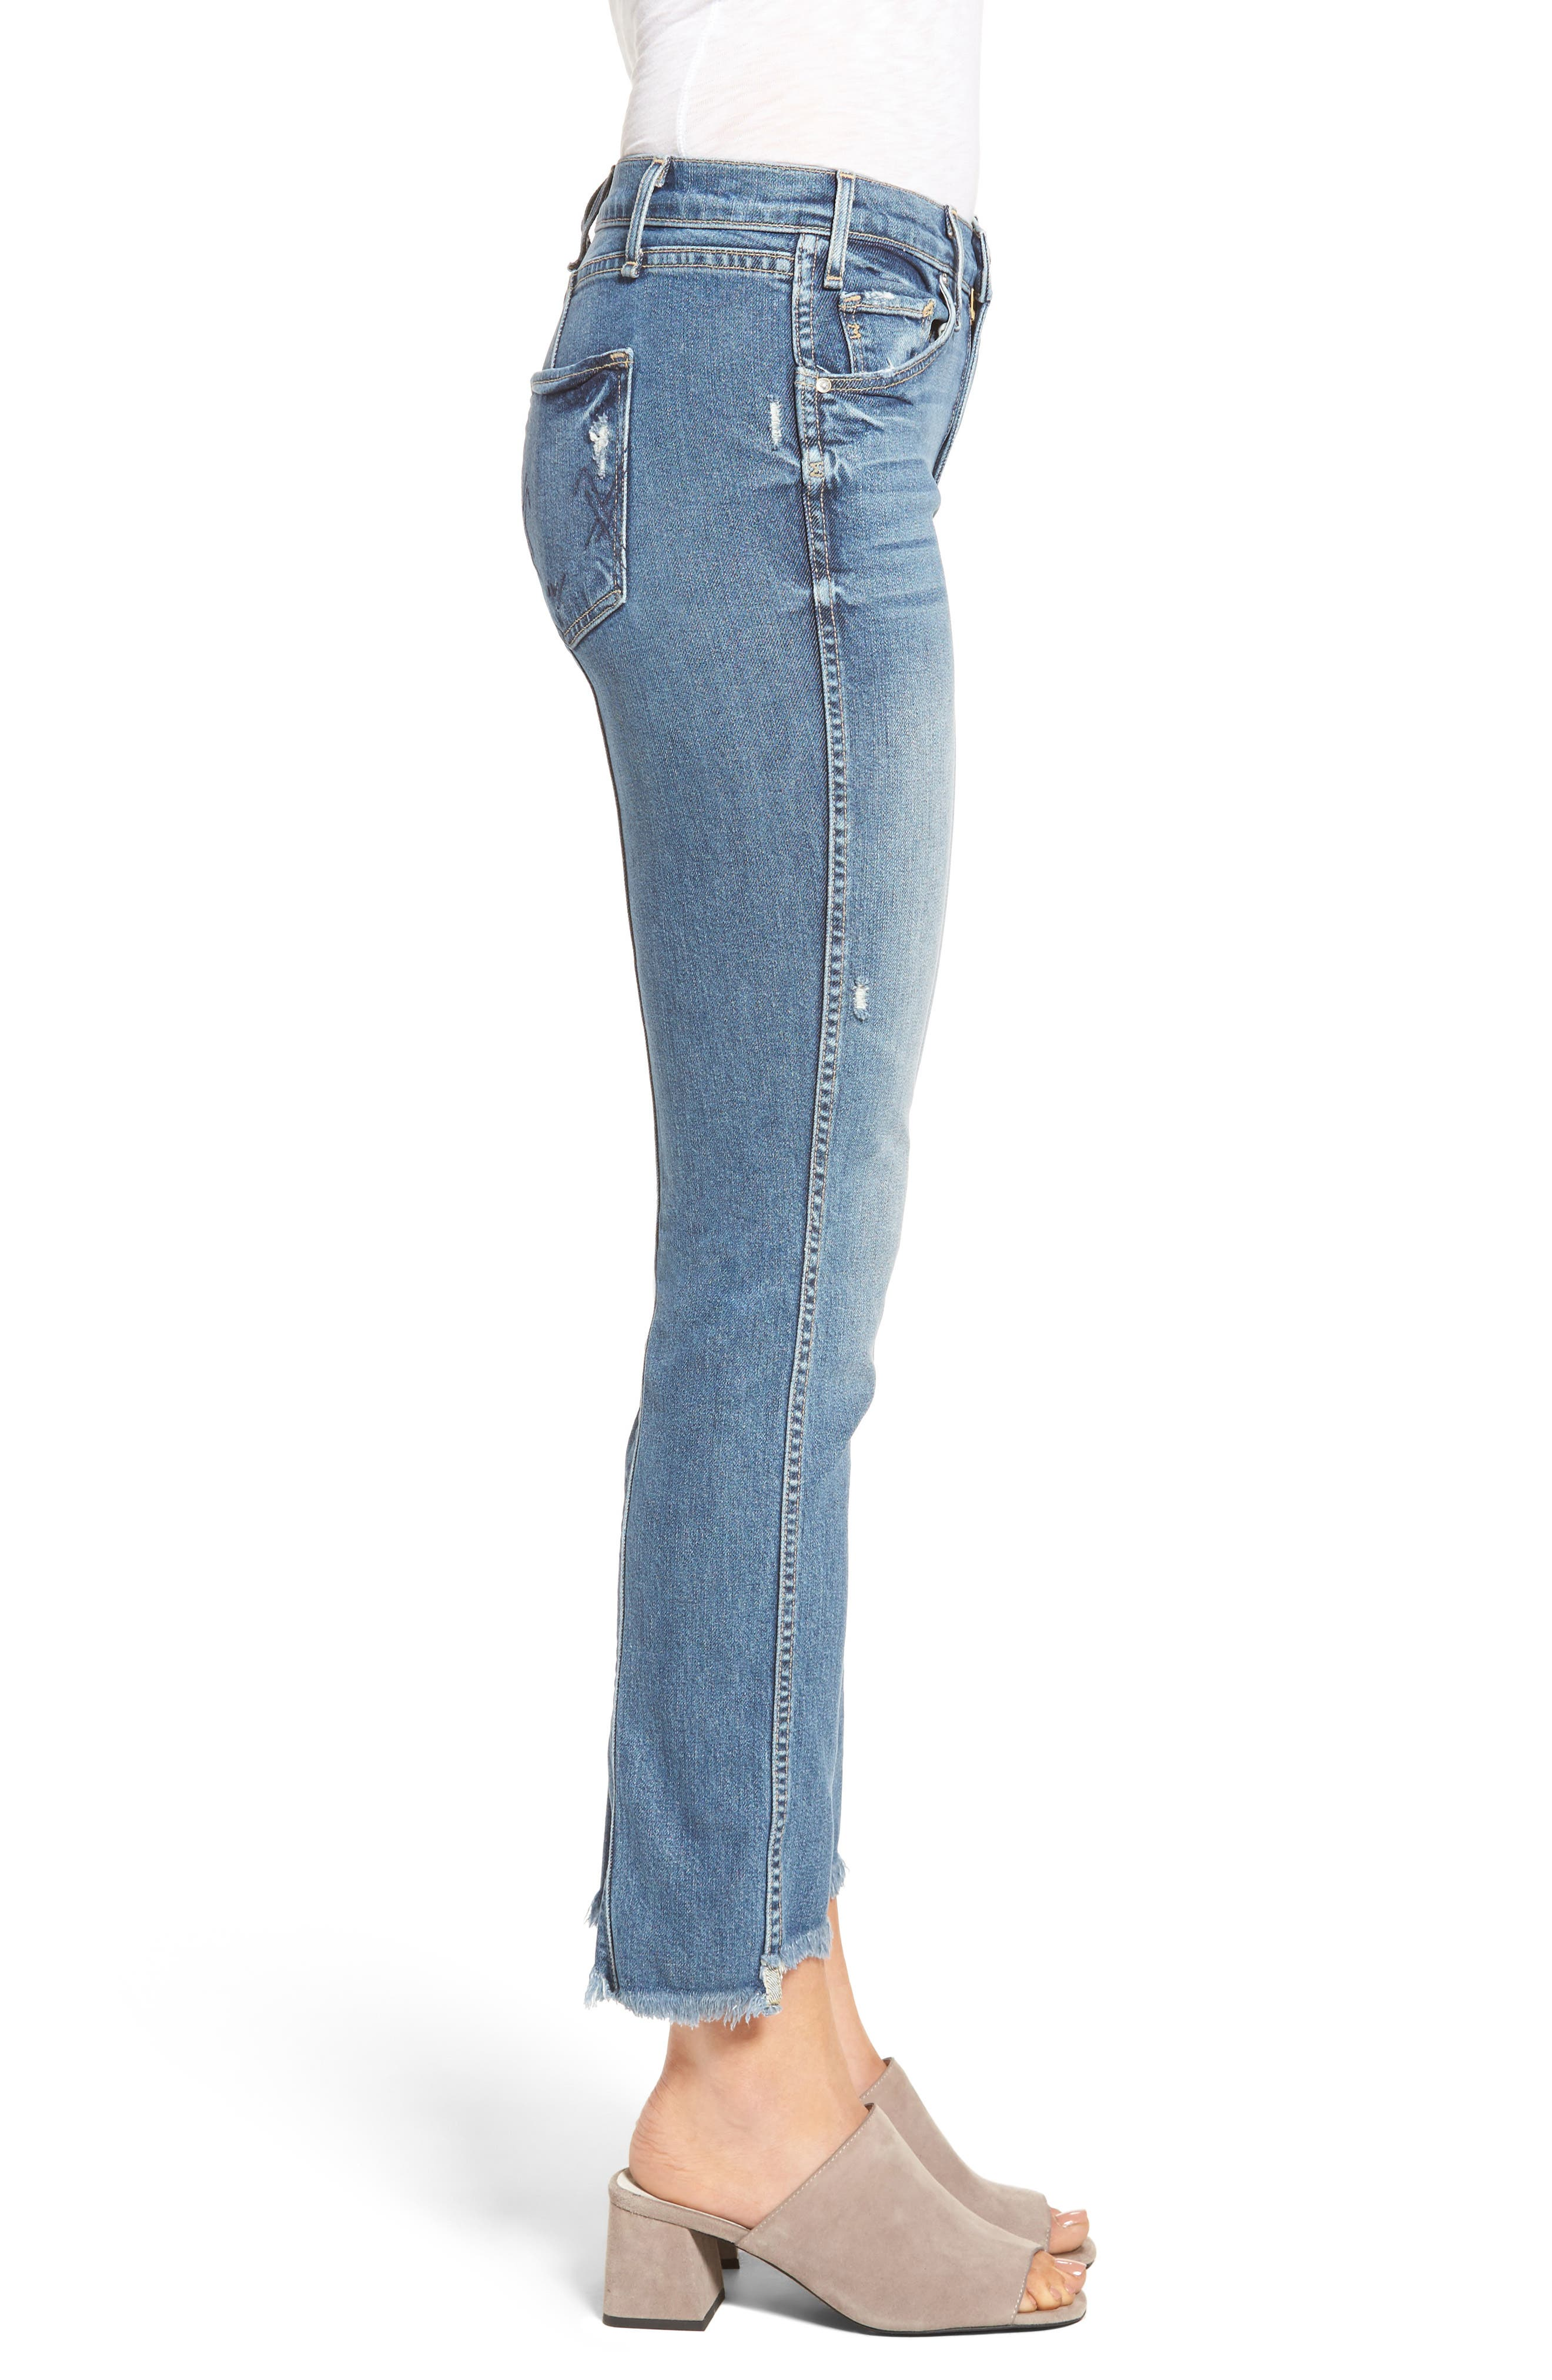 Lido Frayed Crop Straight Leg Jeans,                             Alternate thumbnail 3, color,                             461